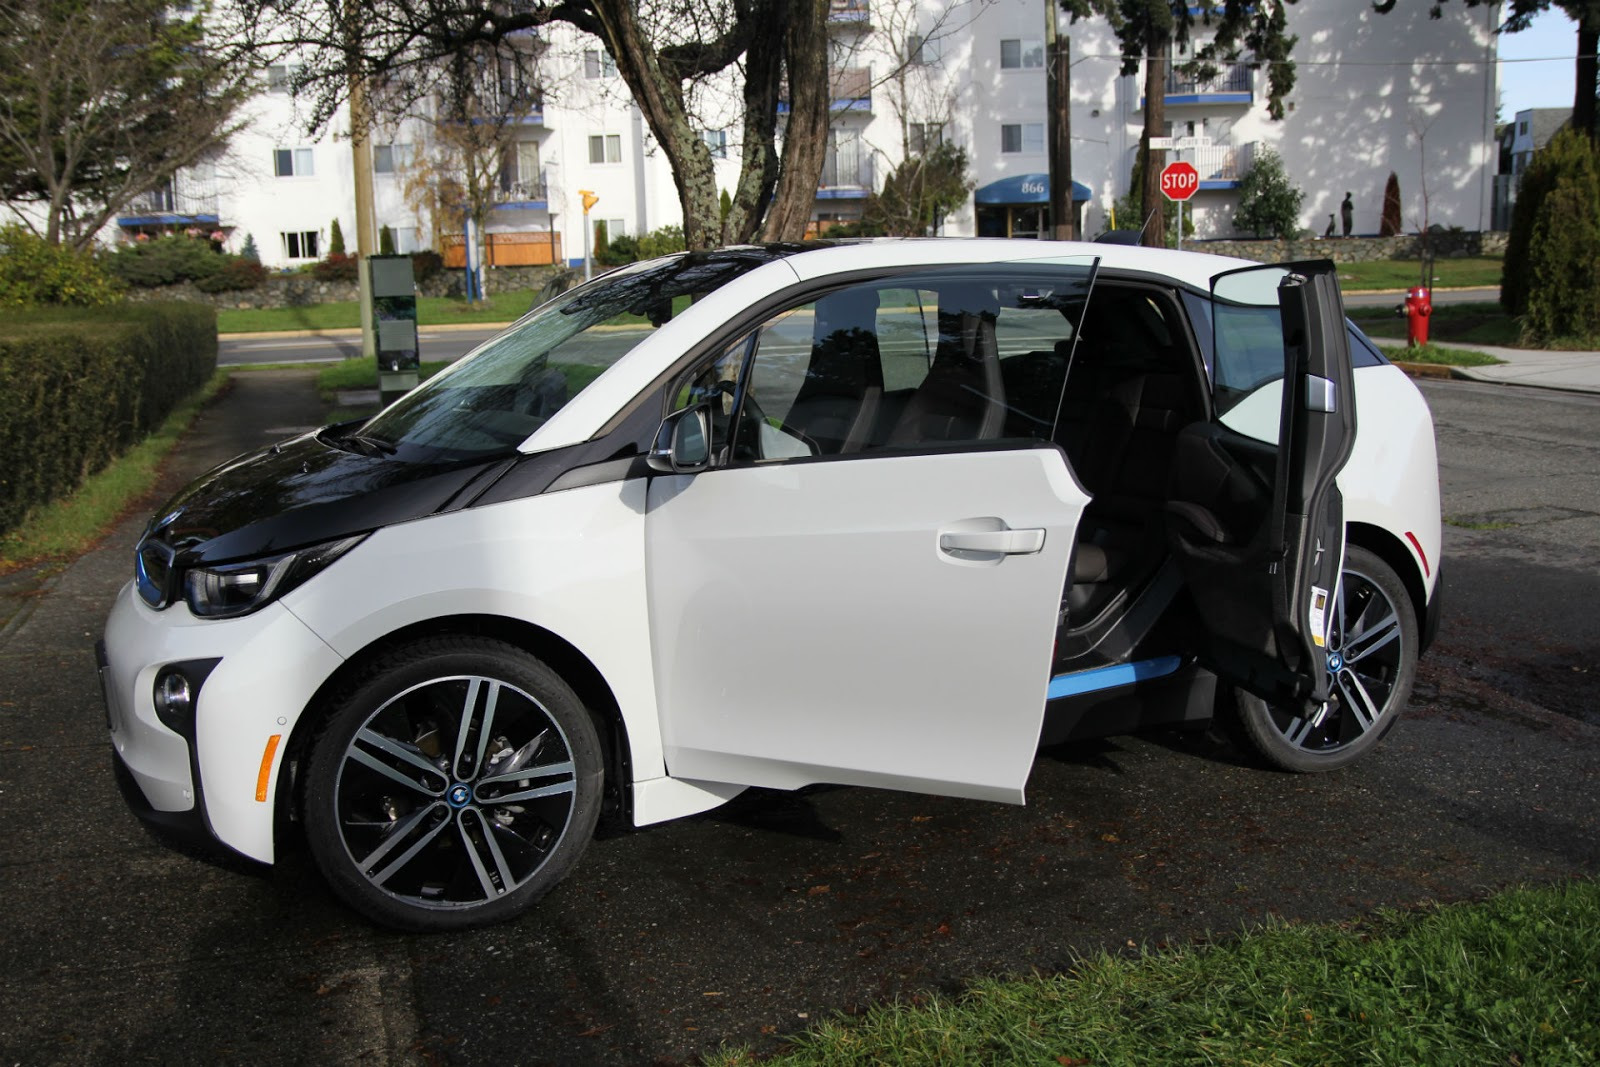 Bmw I3 Vehicle Electrical System Control Units Location 2015 Review Dustin B My Ev Perspective